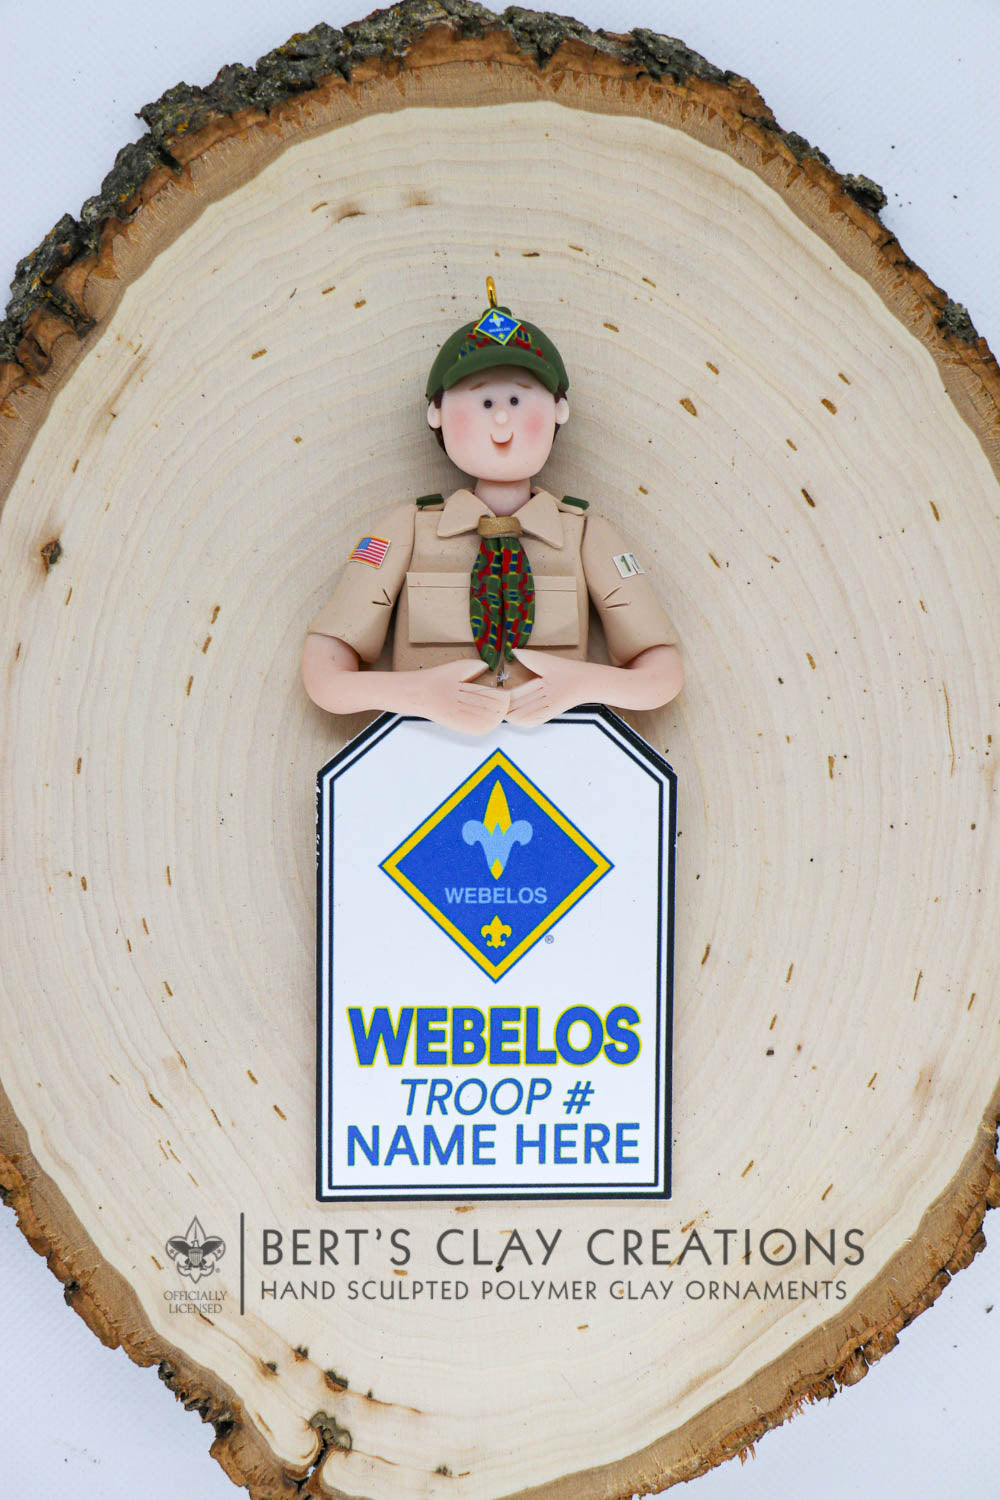 BSA - Webelos Scout Ornament (Bust Version) - Bert's Clay Creations